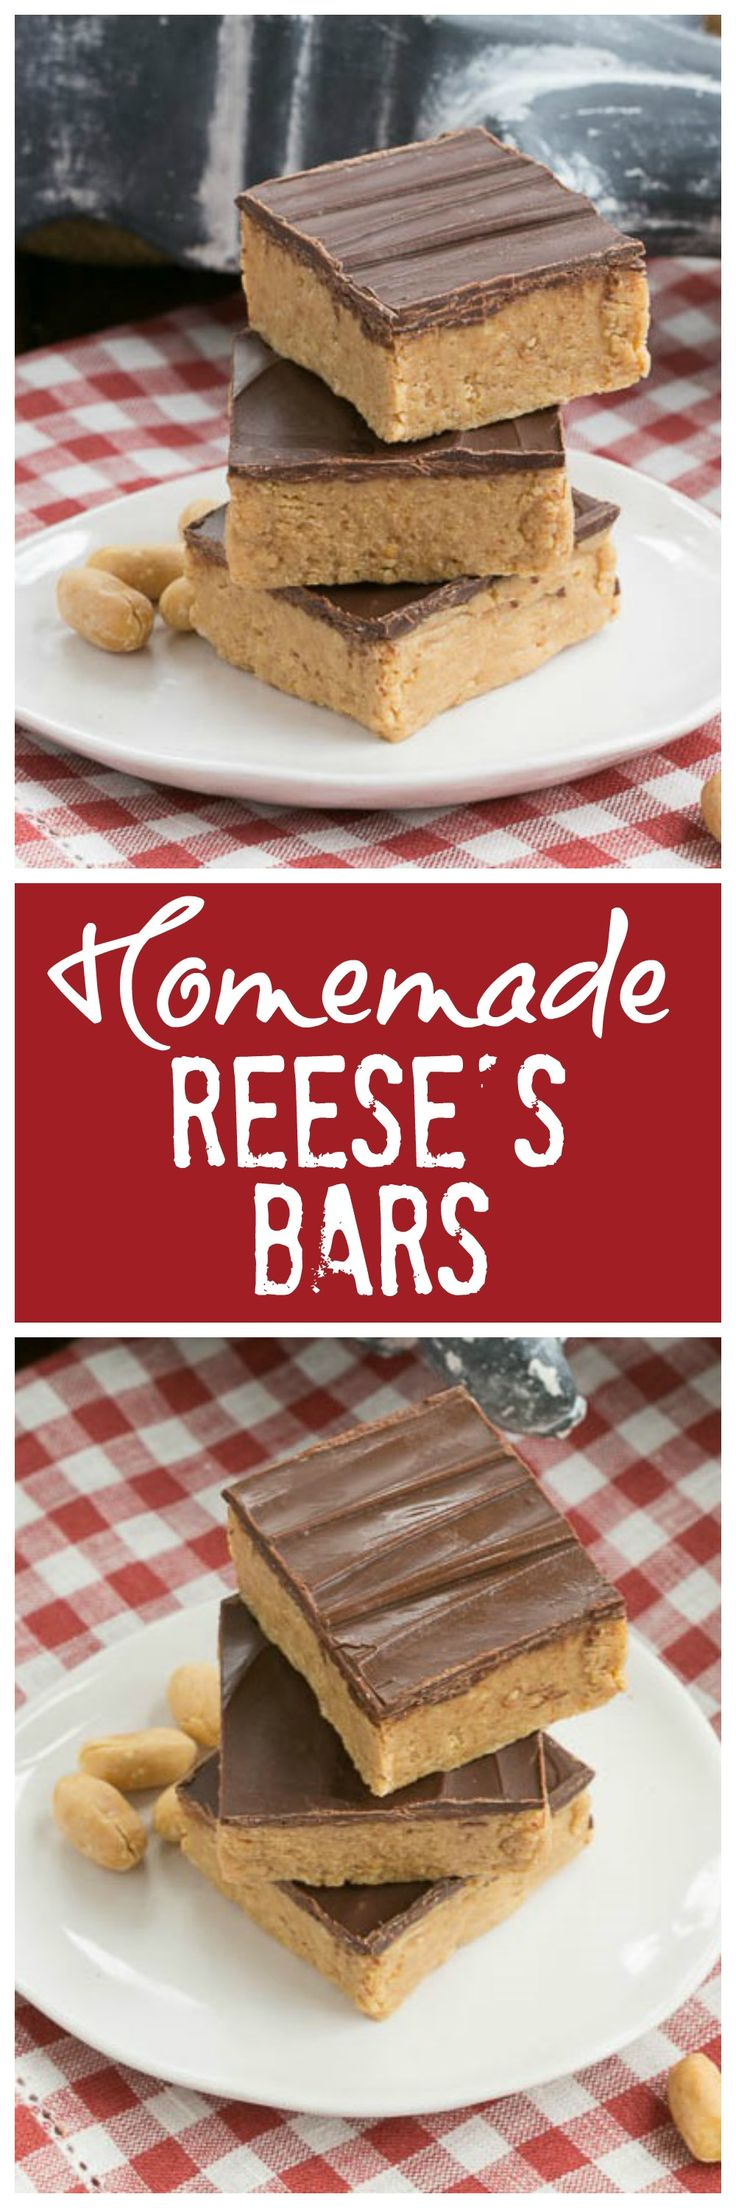 Homemade Reese's Bars | All the magnificent flavors of a Reese's peanut butter cup in a no-bake bar